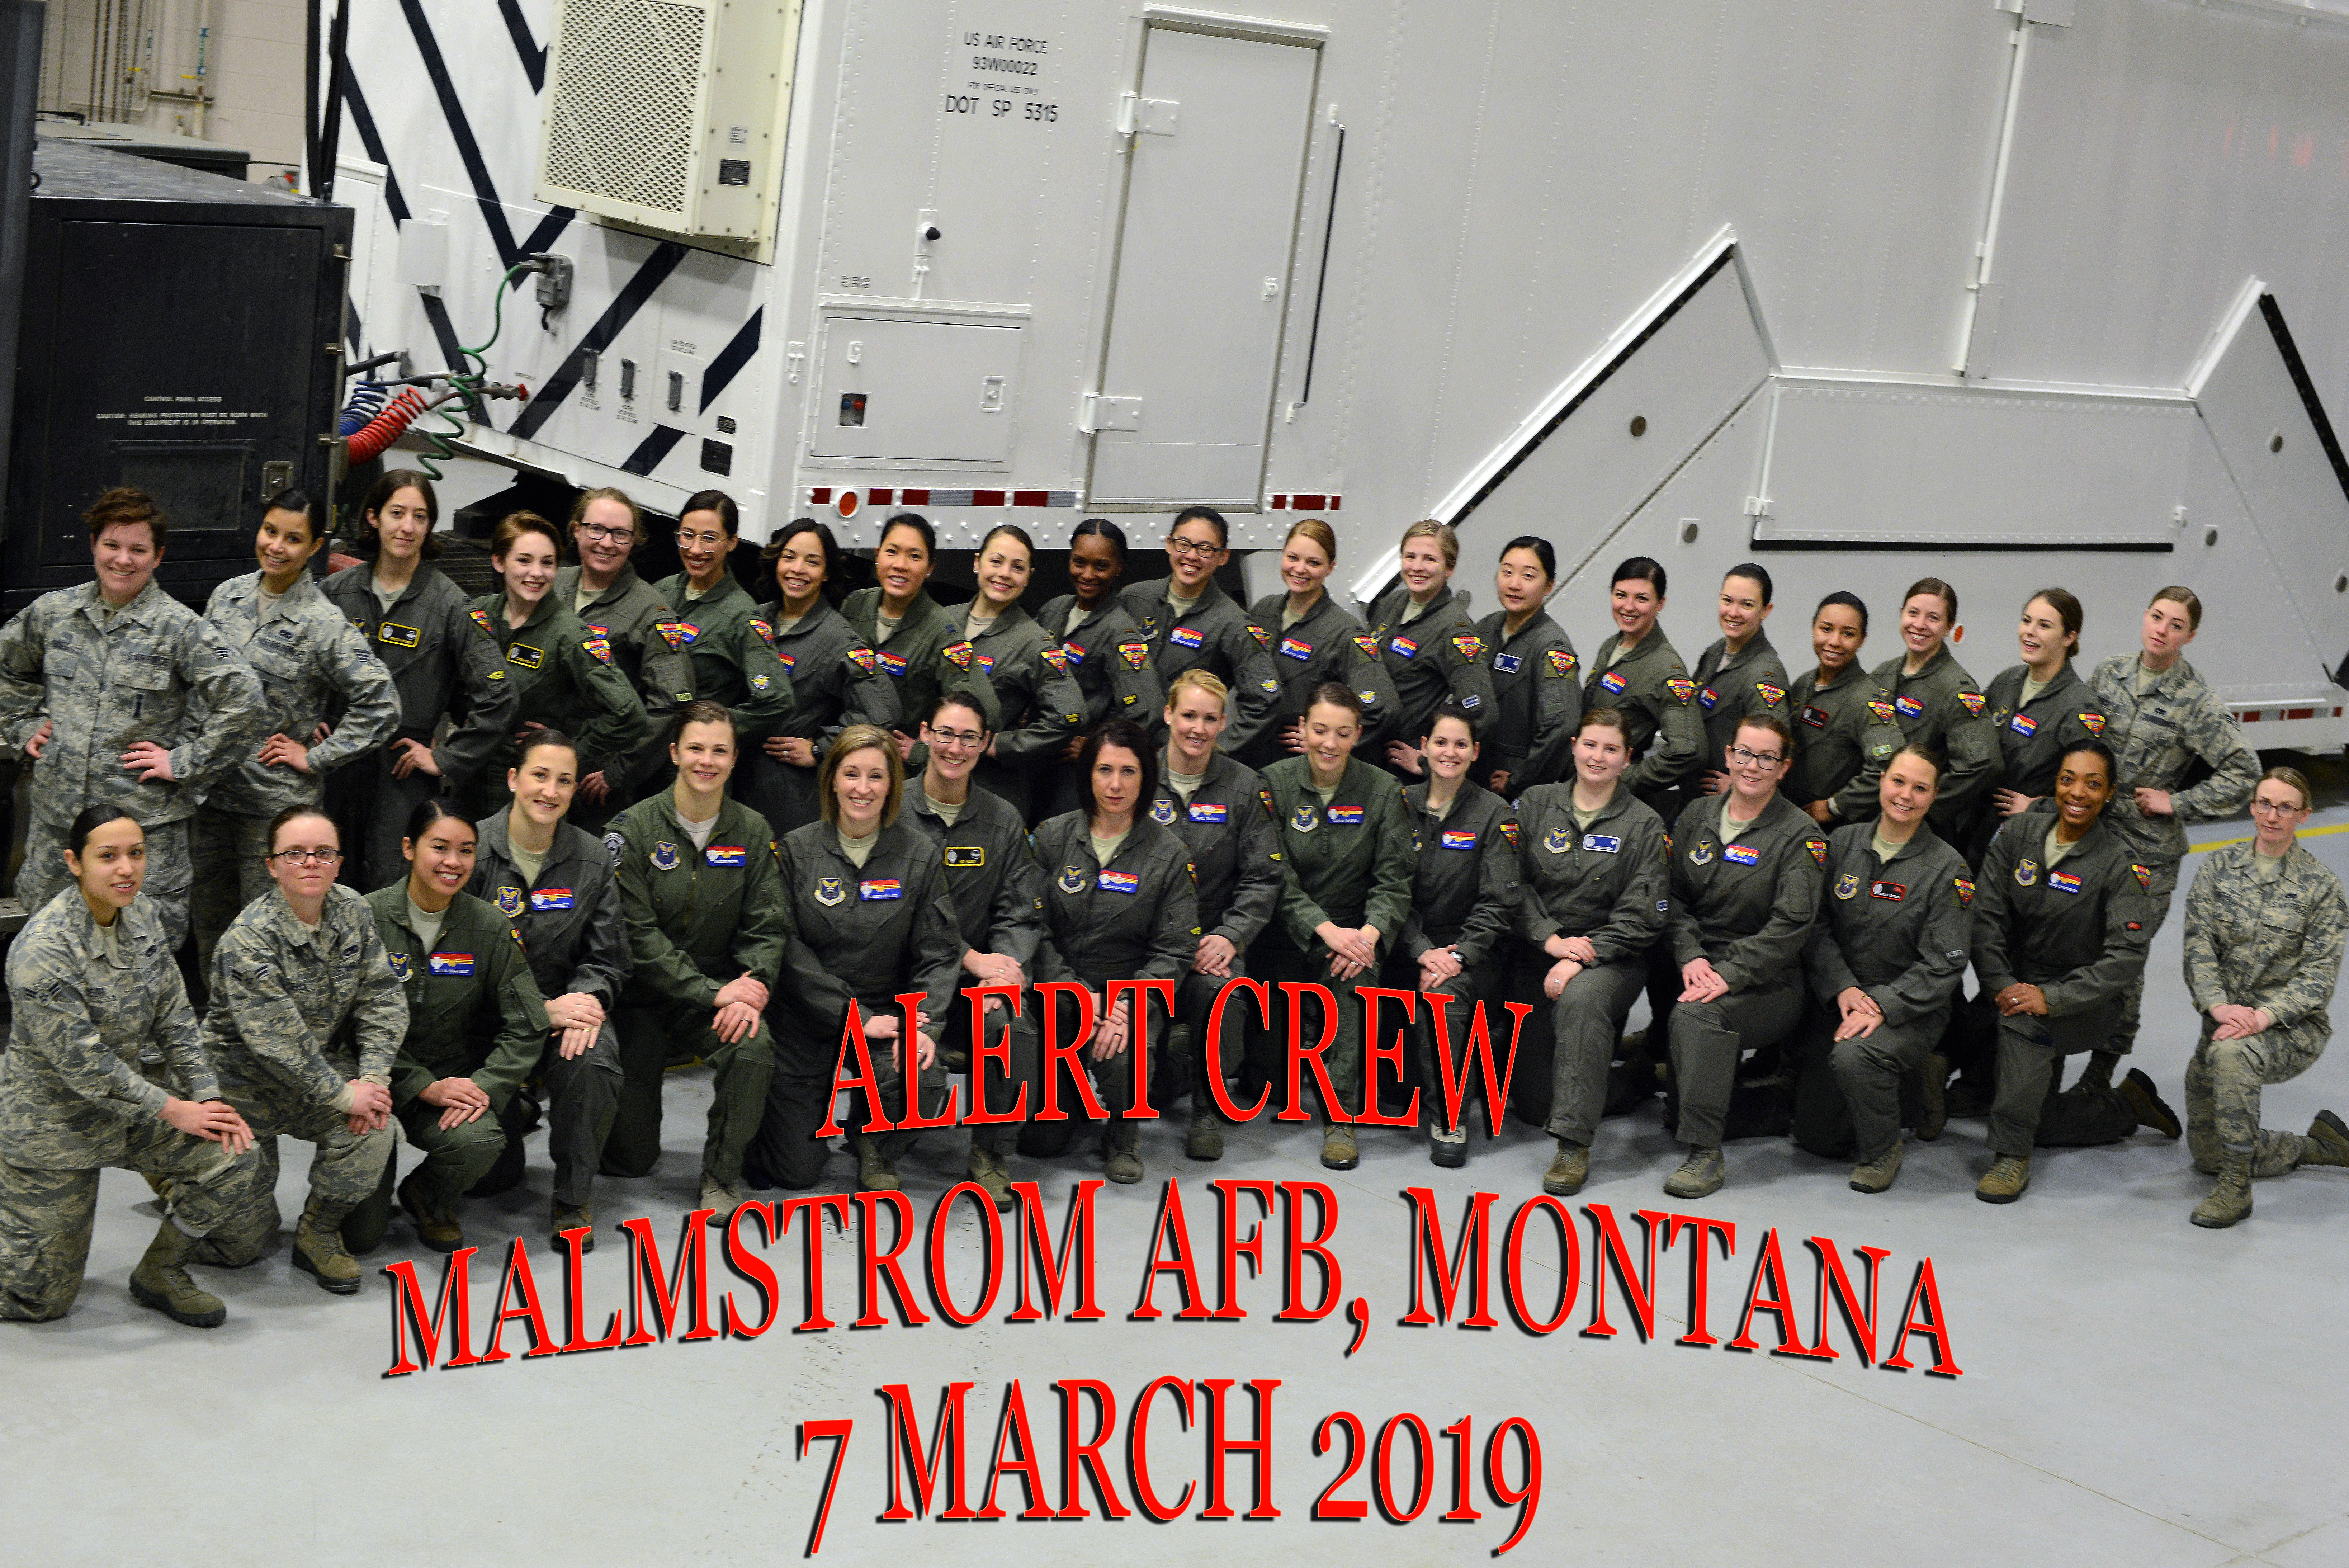 Malmstrom celebrates Women's History Month, all-female field mission